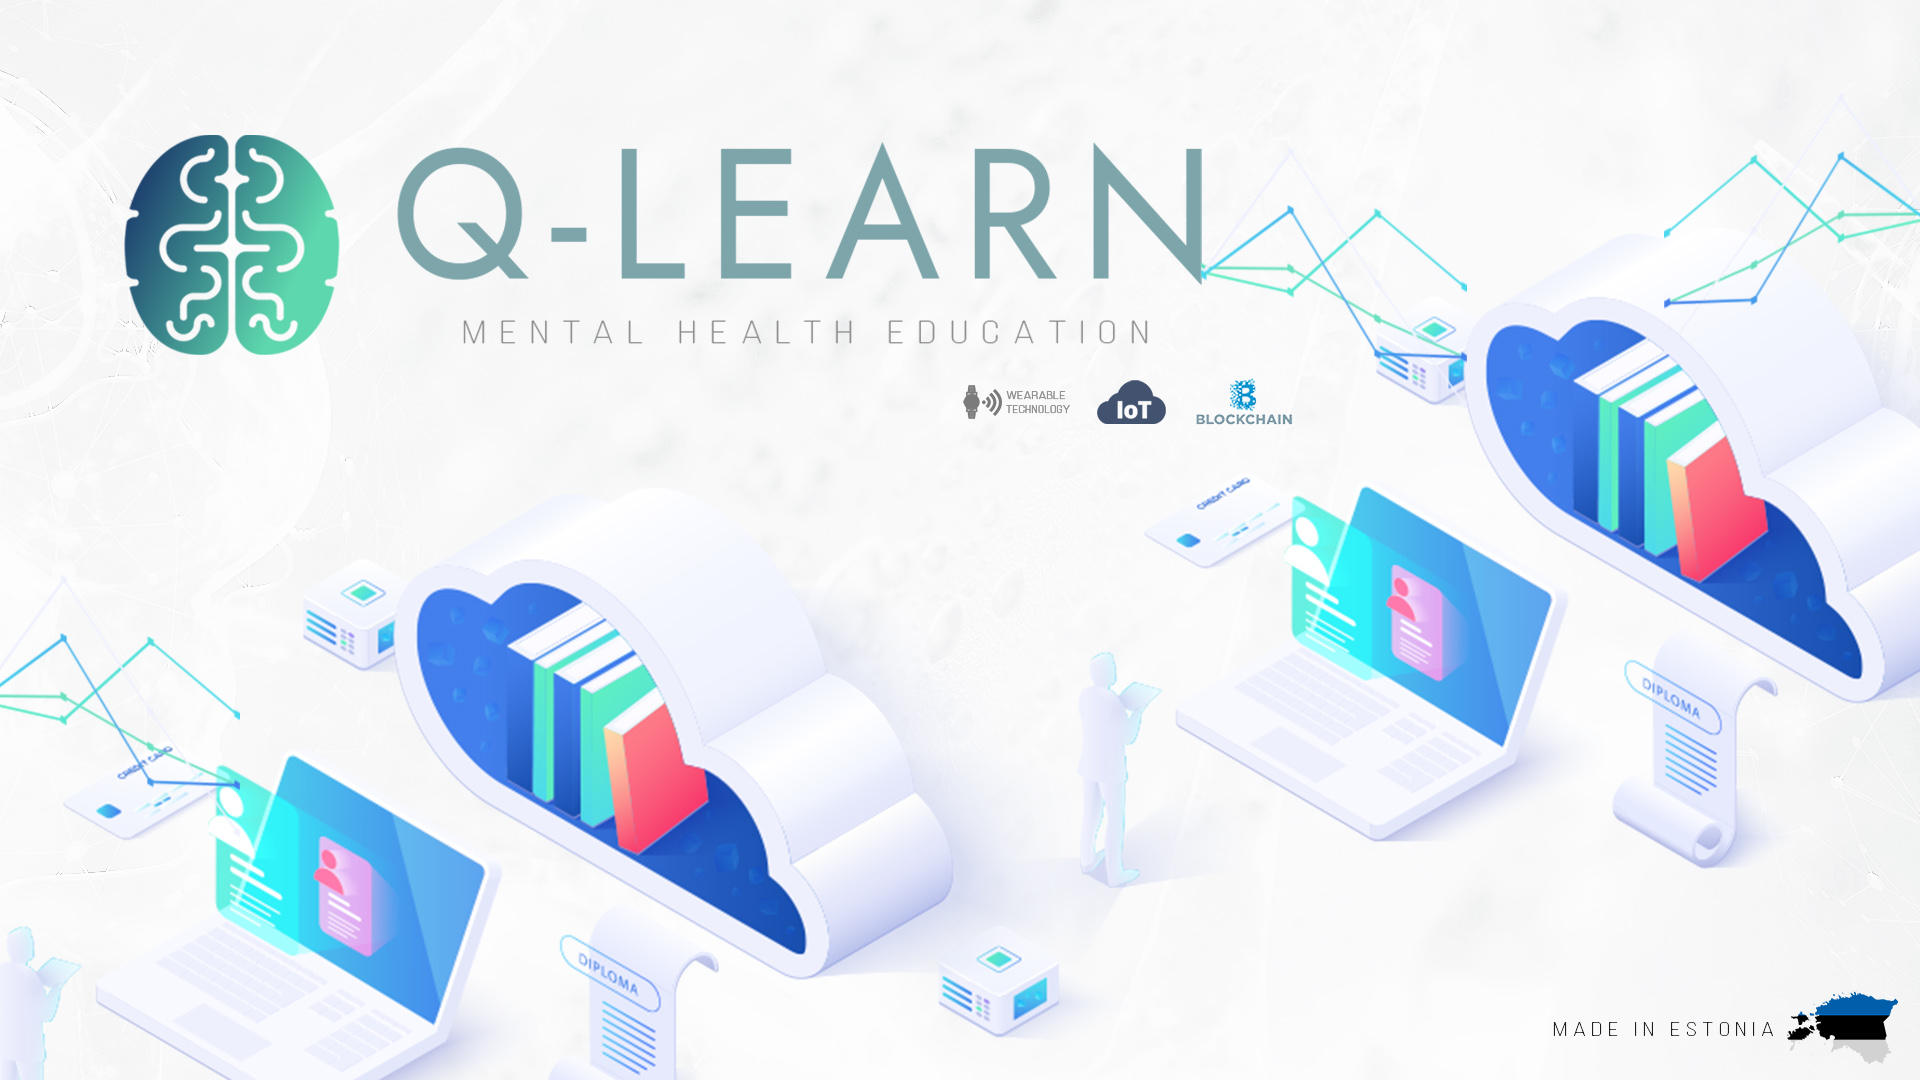 Q-Learn banner image